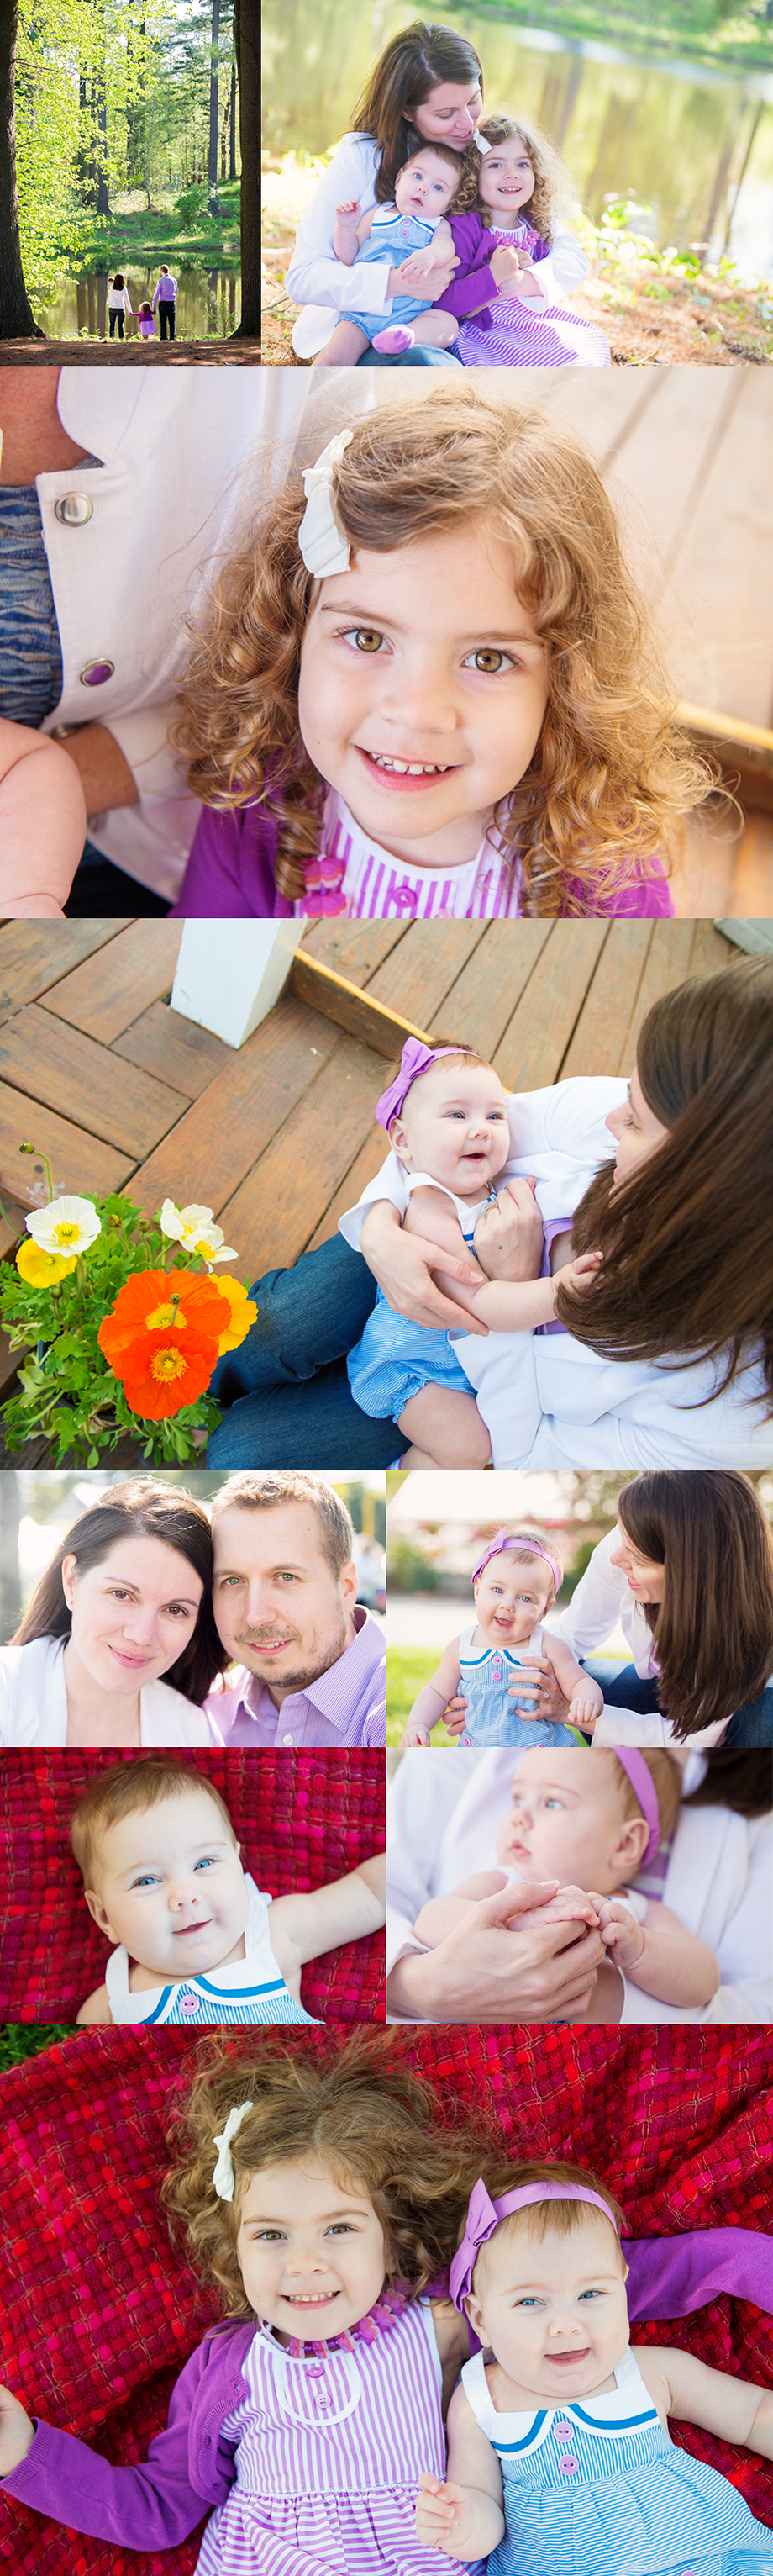 North Andover MA Family Photographer 2